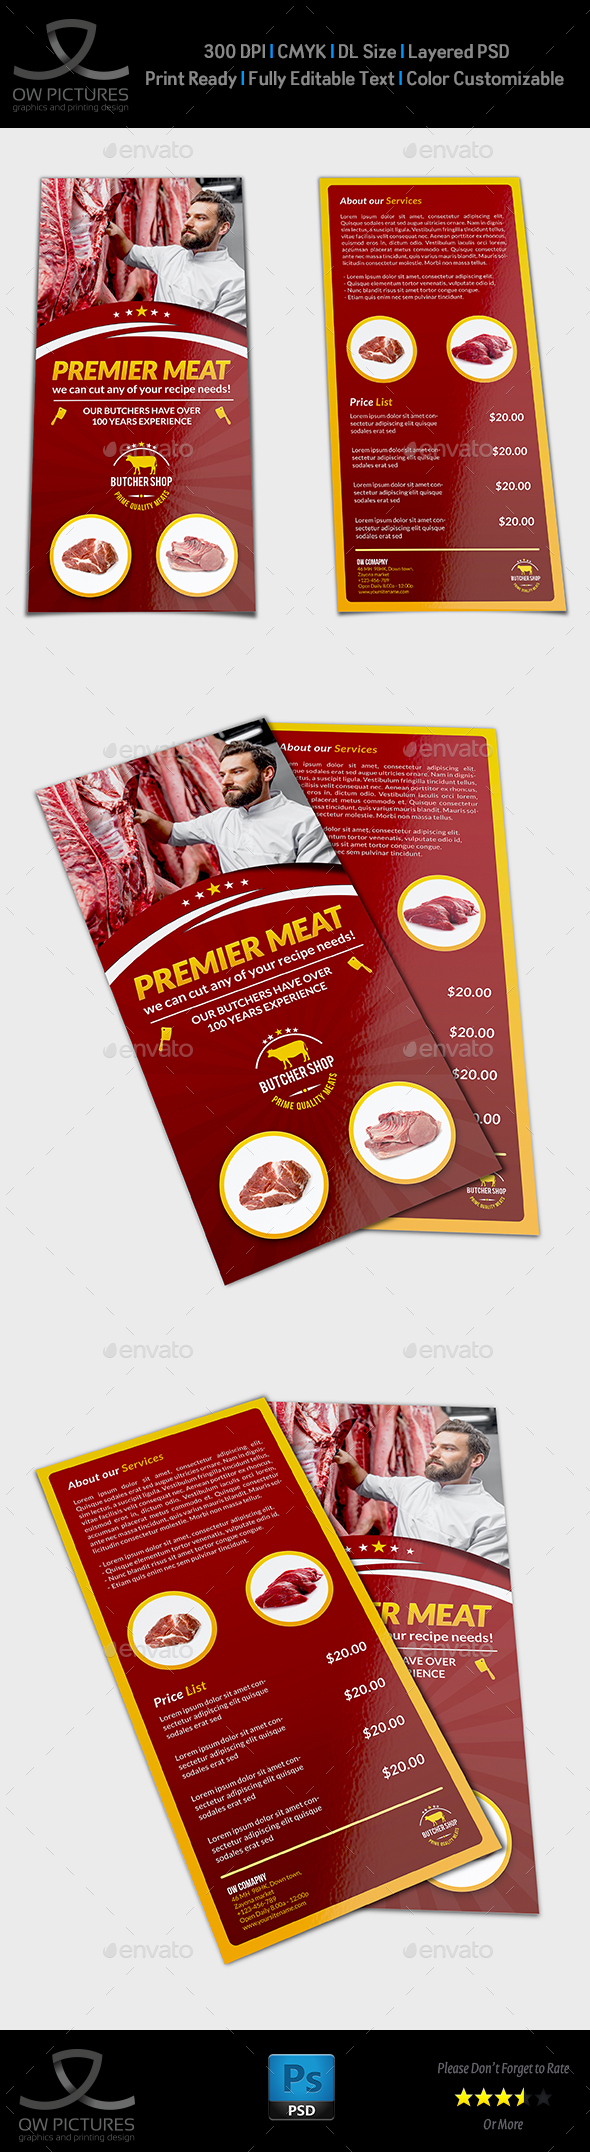 Butcher Shop DL Flyer Template by OWPictures | GraphicRiver